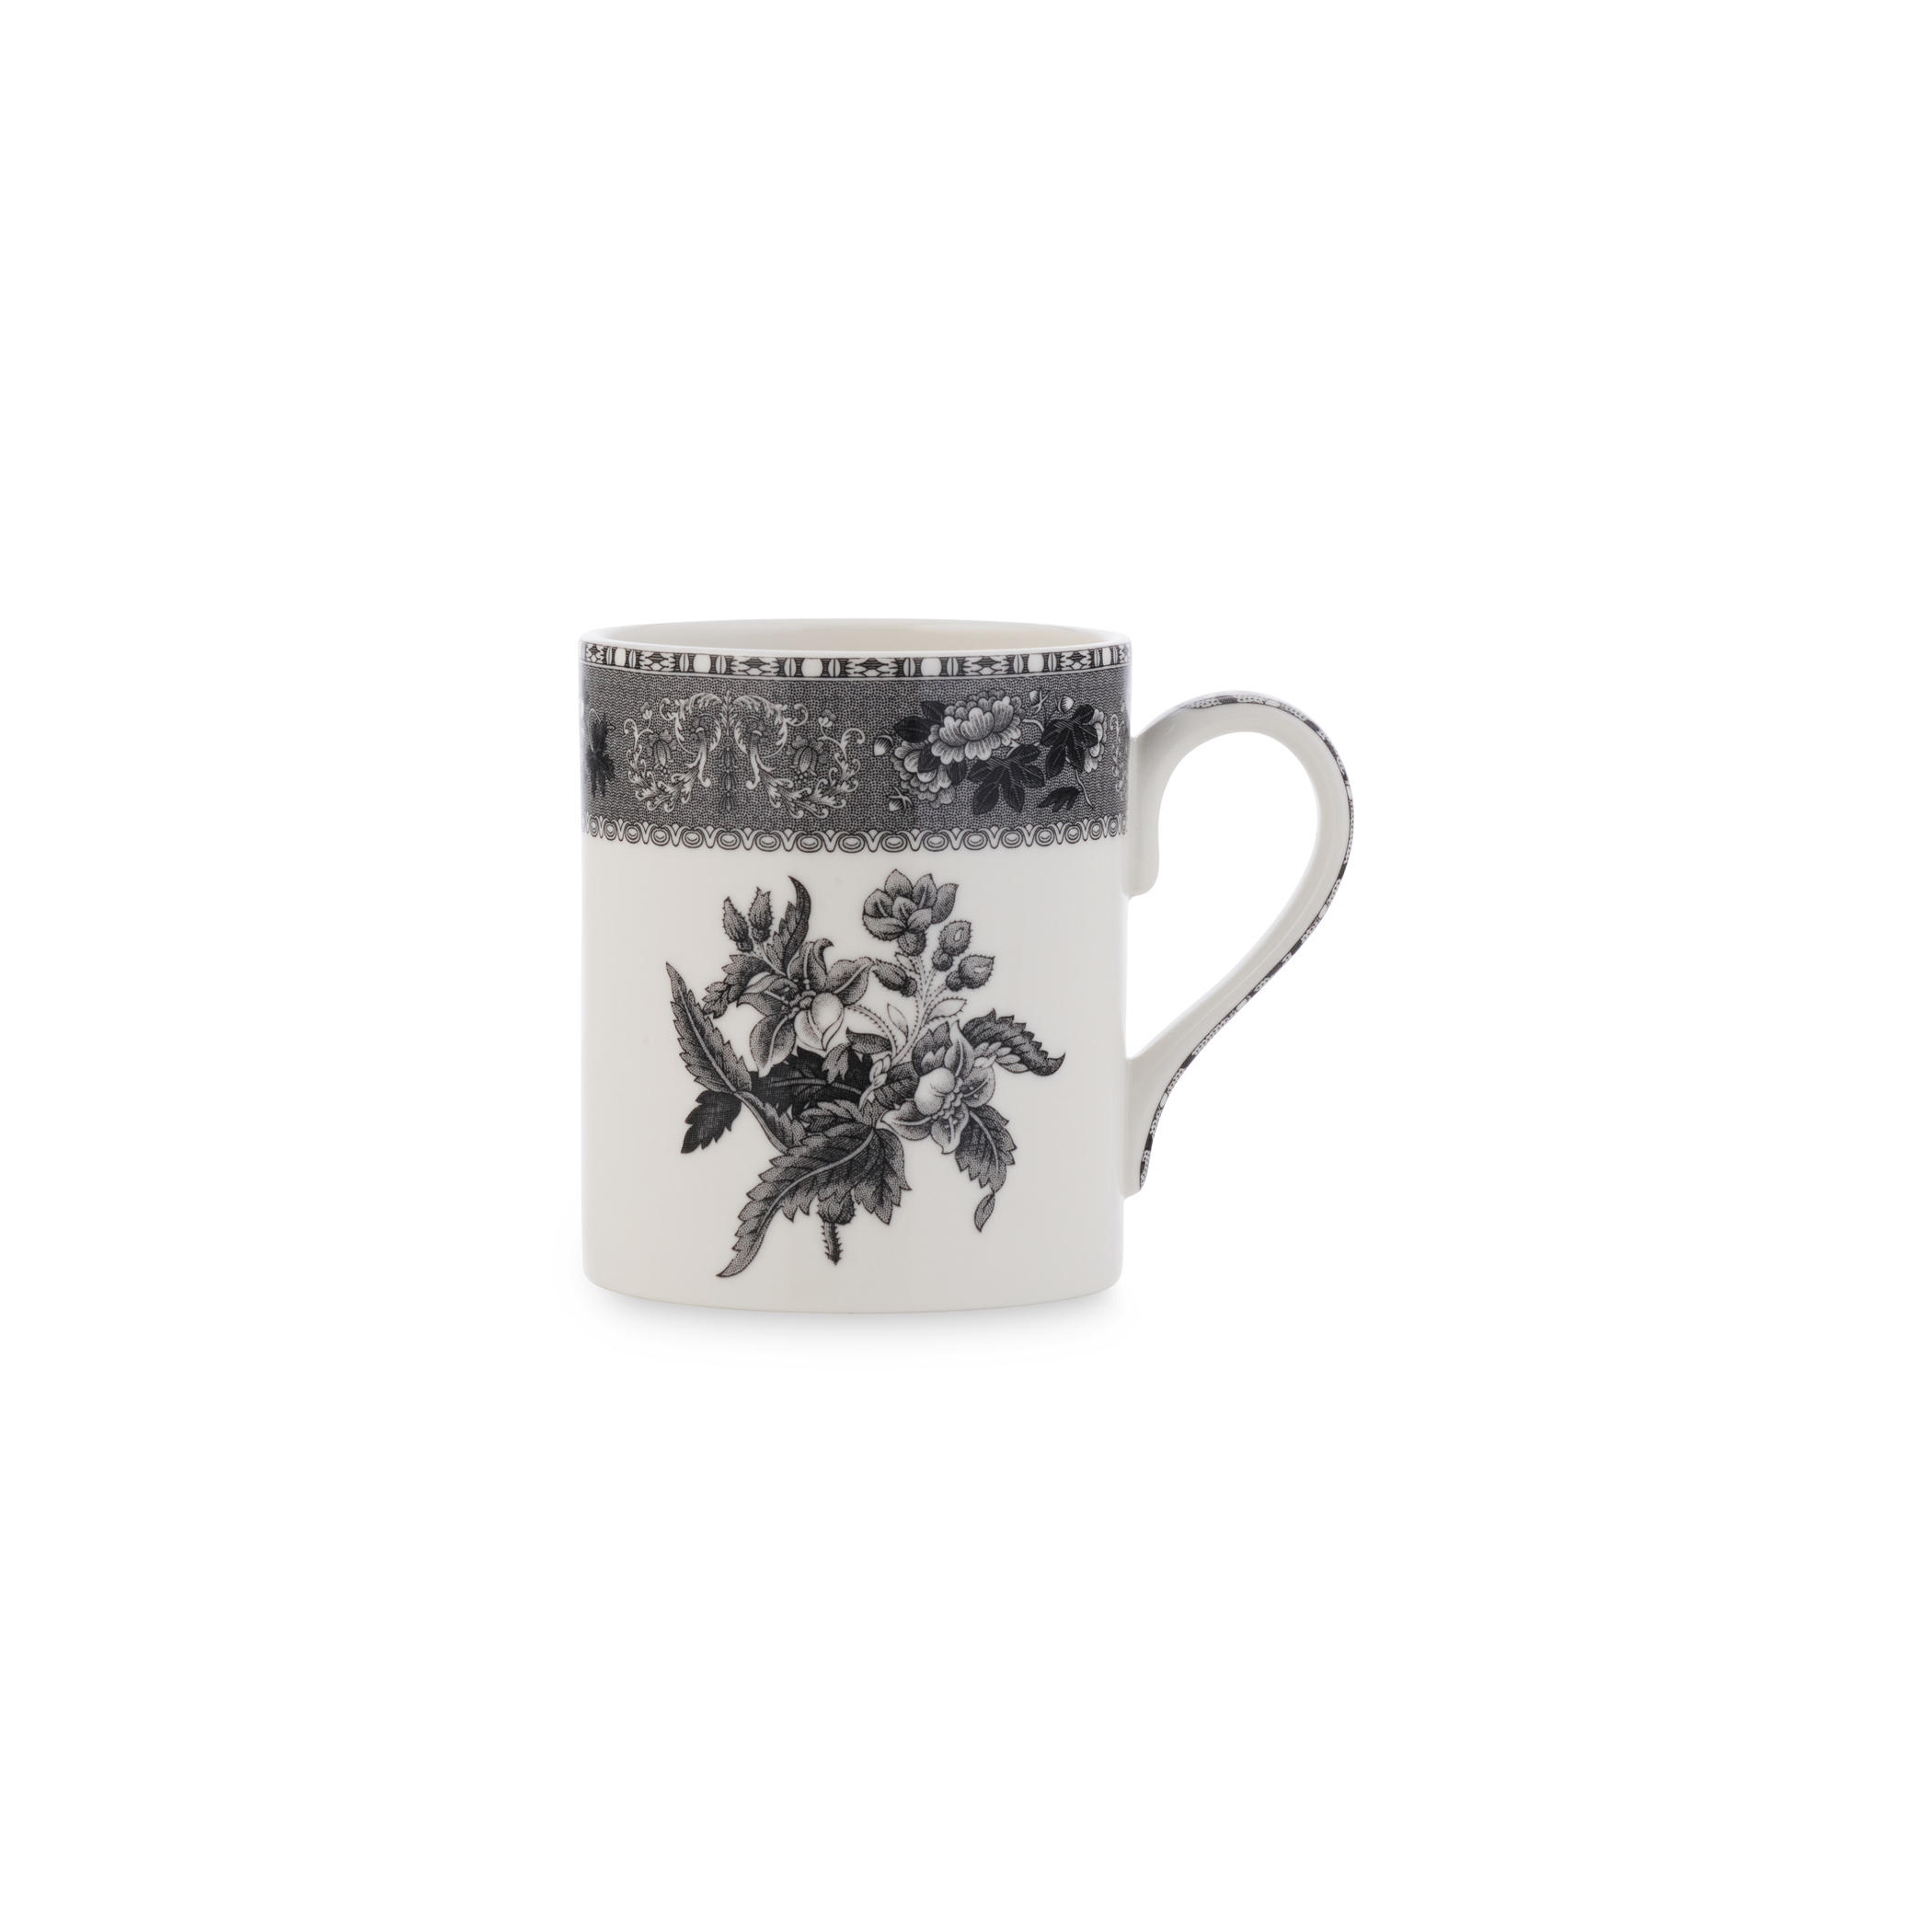 Spode Heritage 16 Ounce Mug (Camilla) image number 0